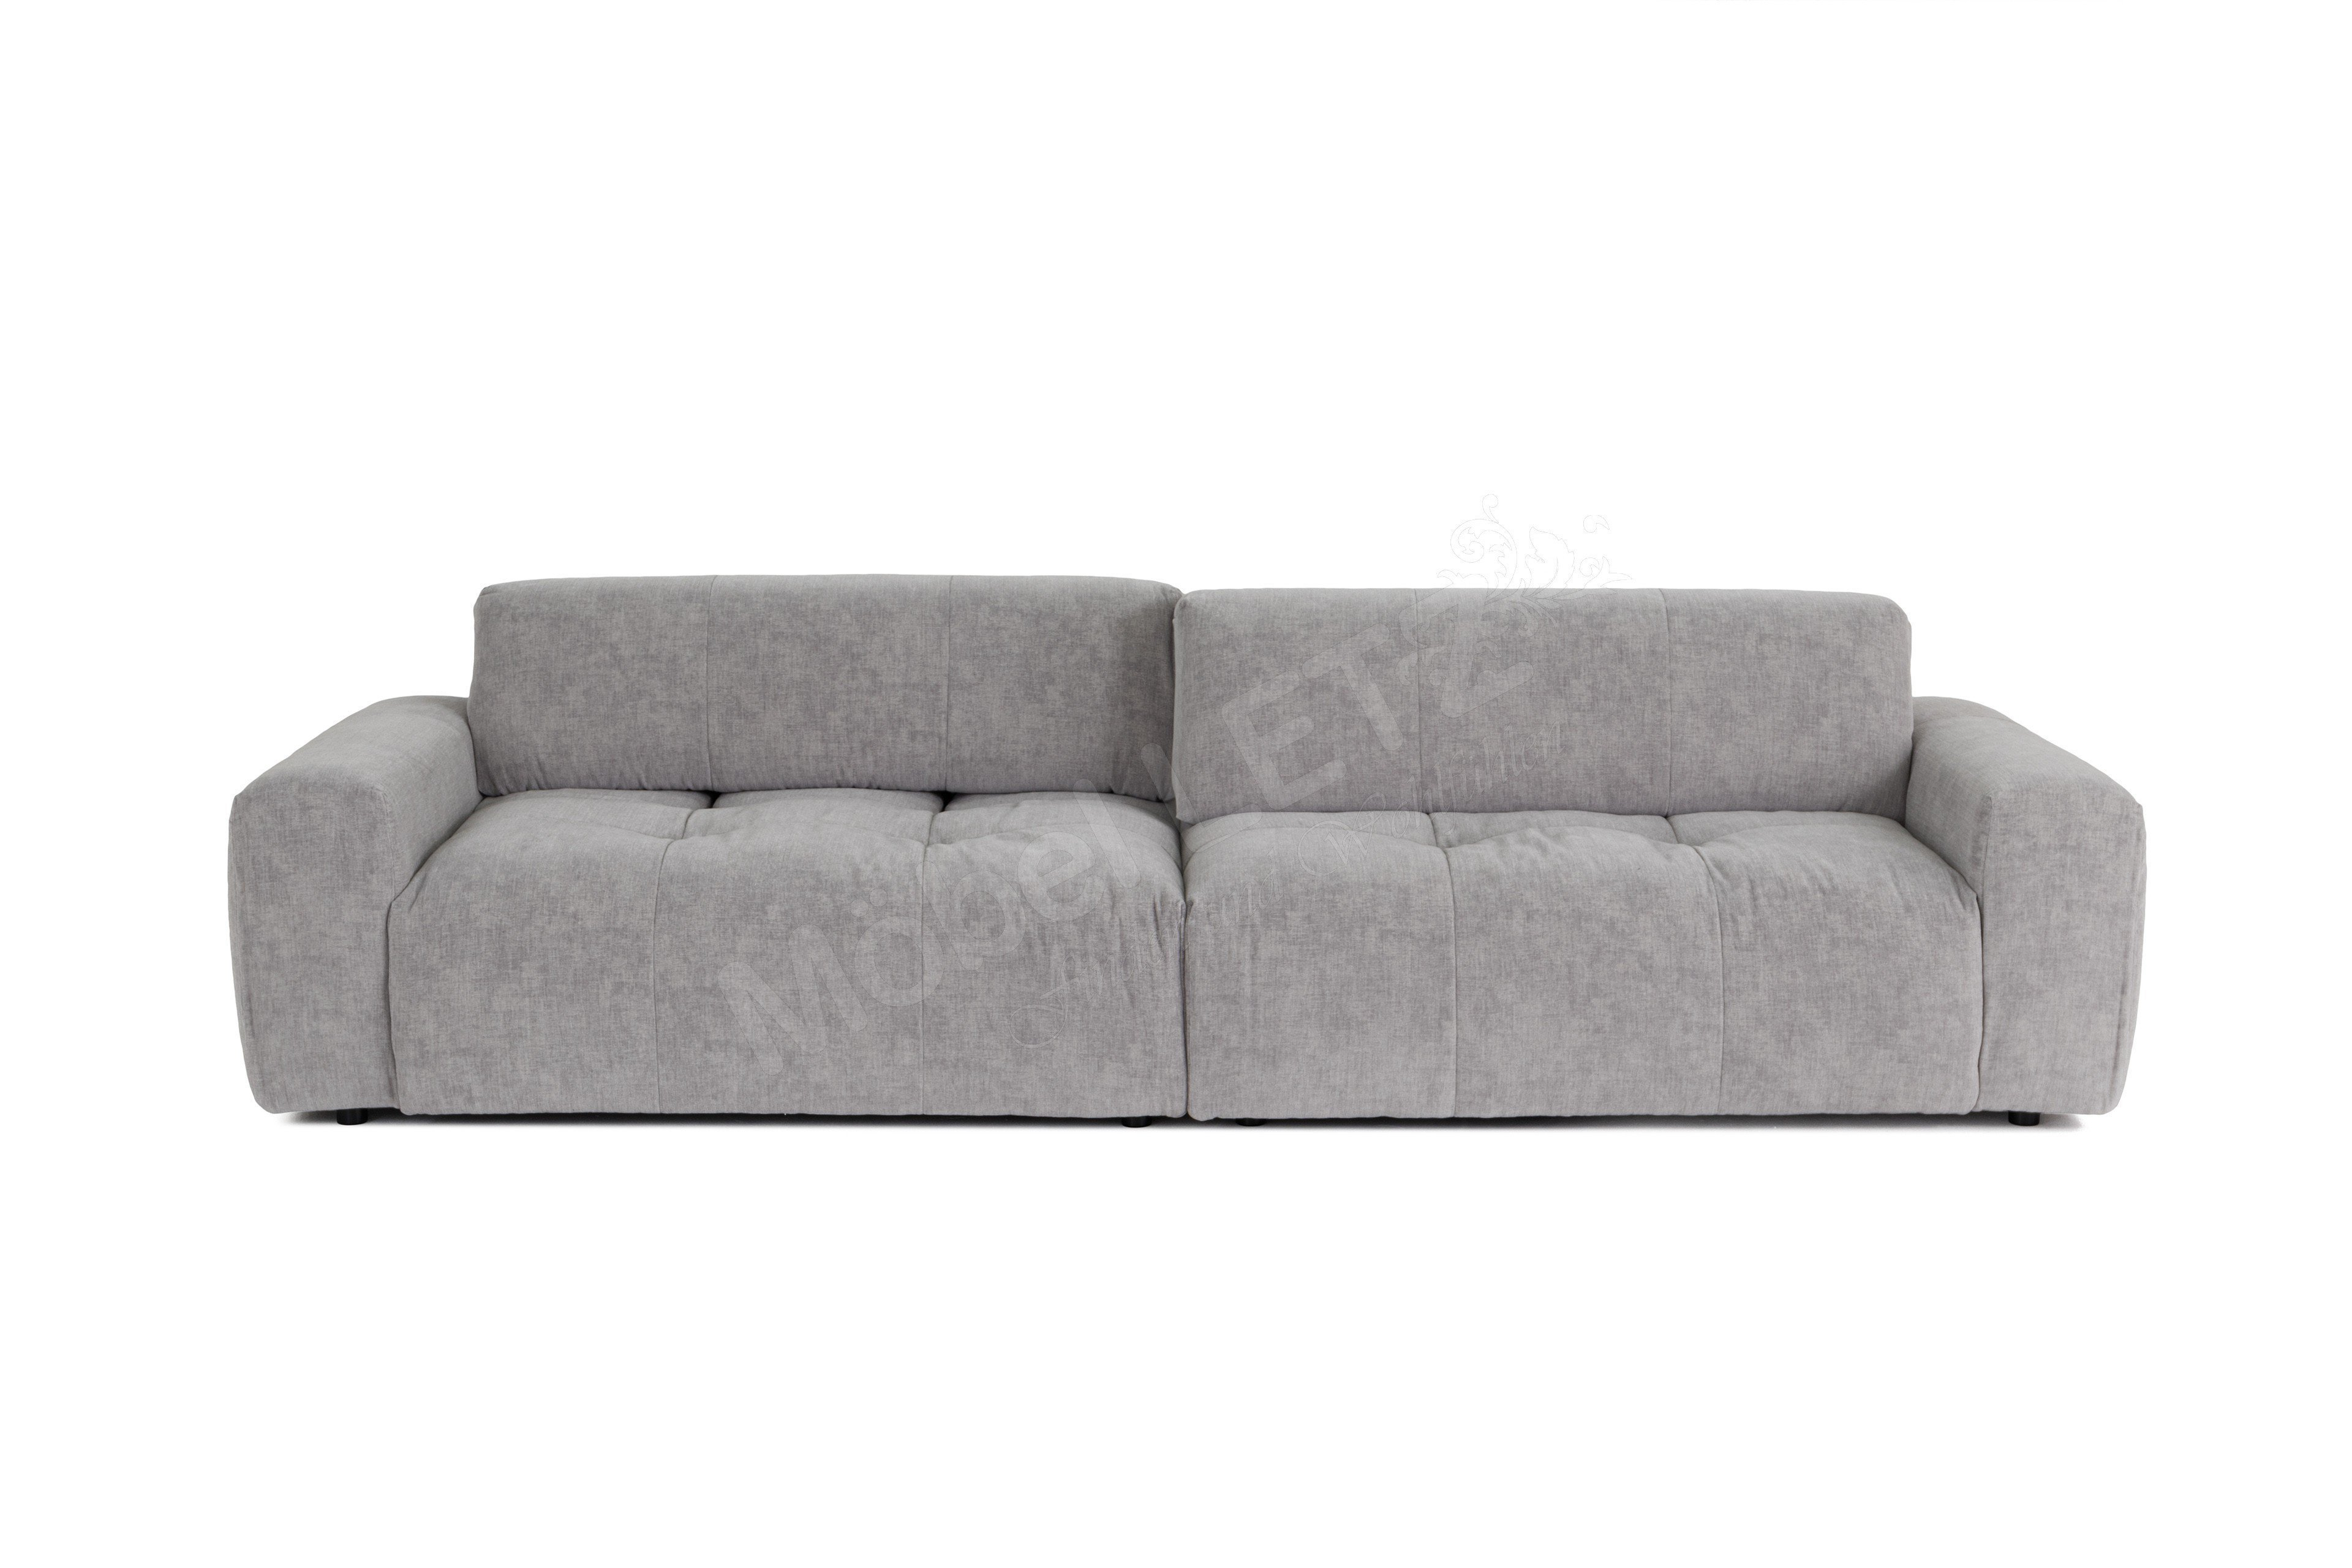 Couch Polster Bezug Place Von Candy Big Sofa Light Grey